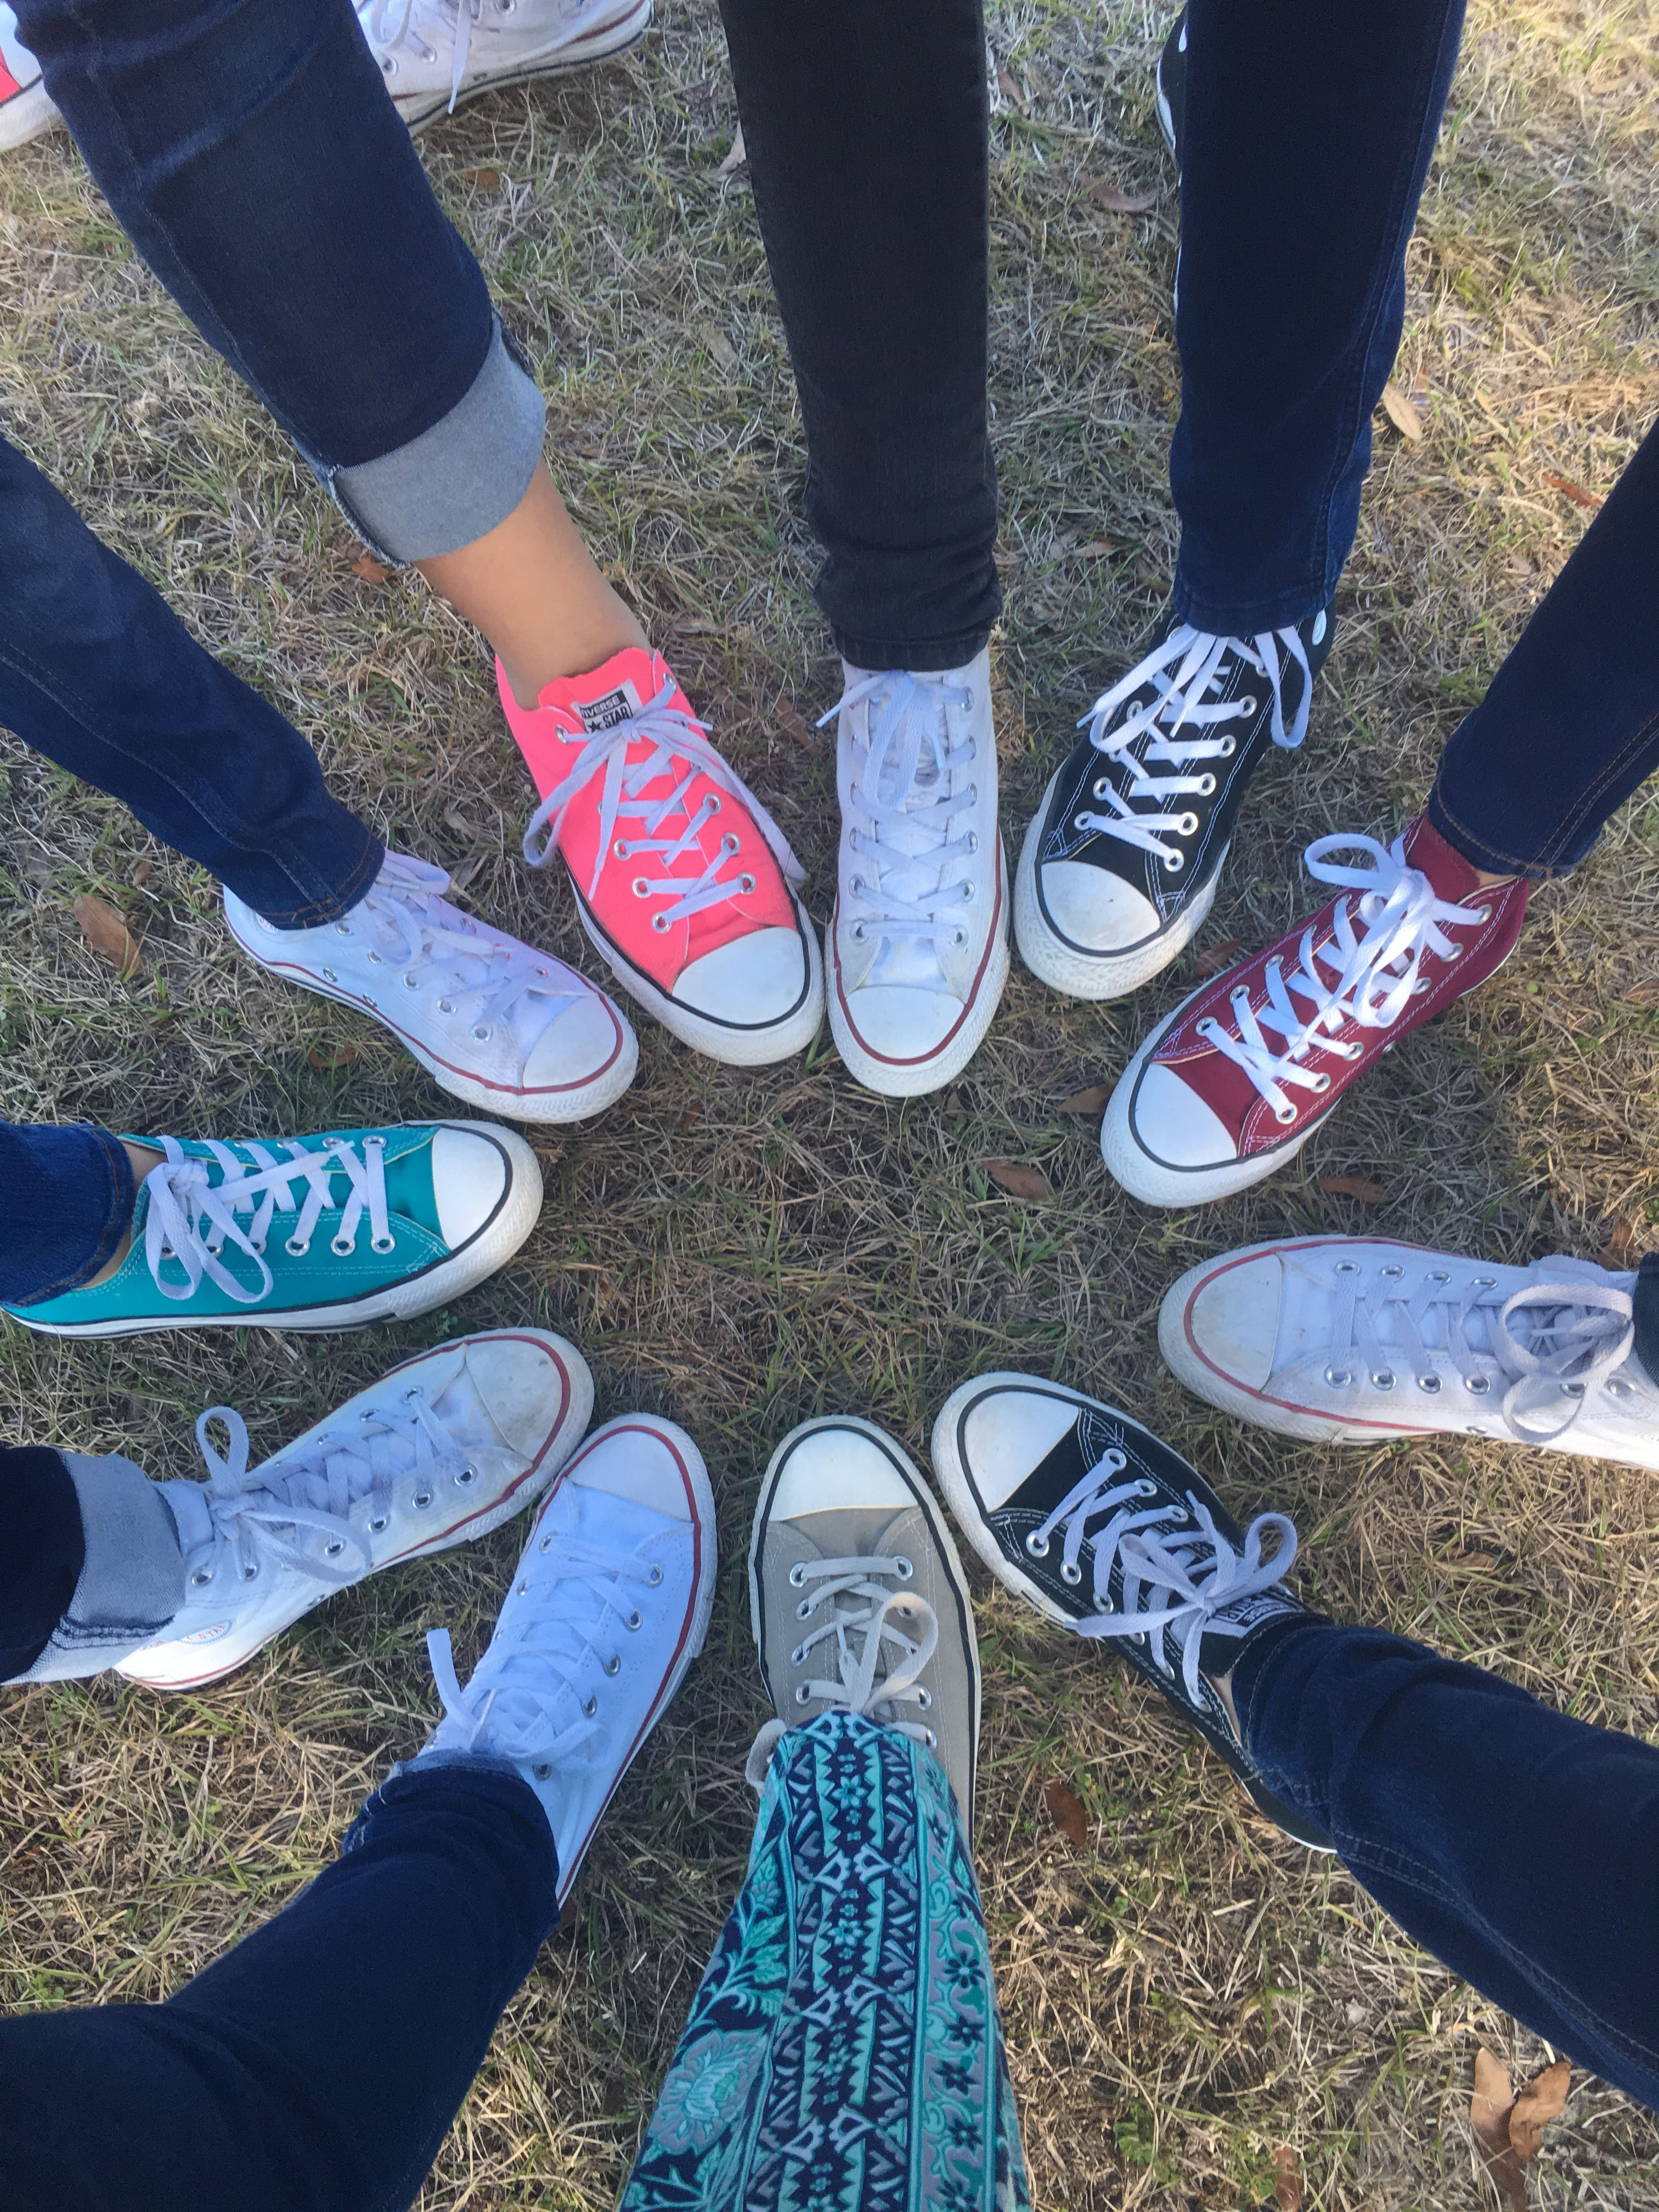 wholesale dealer e5515 a4551 Pin by Ristania dwi on Photography   Pinterest   Converse